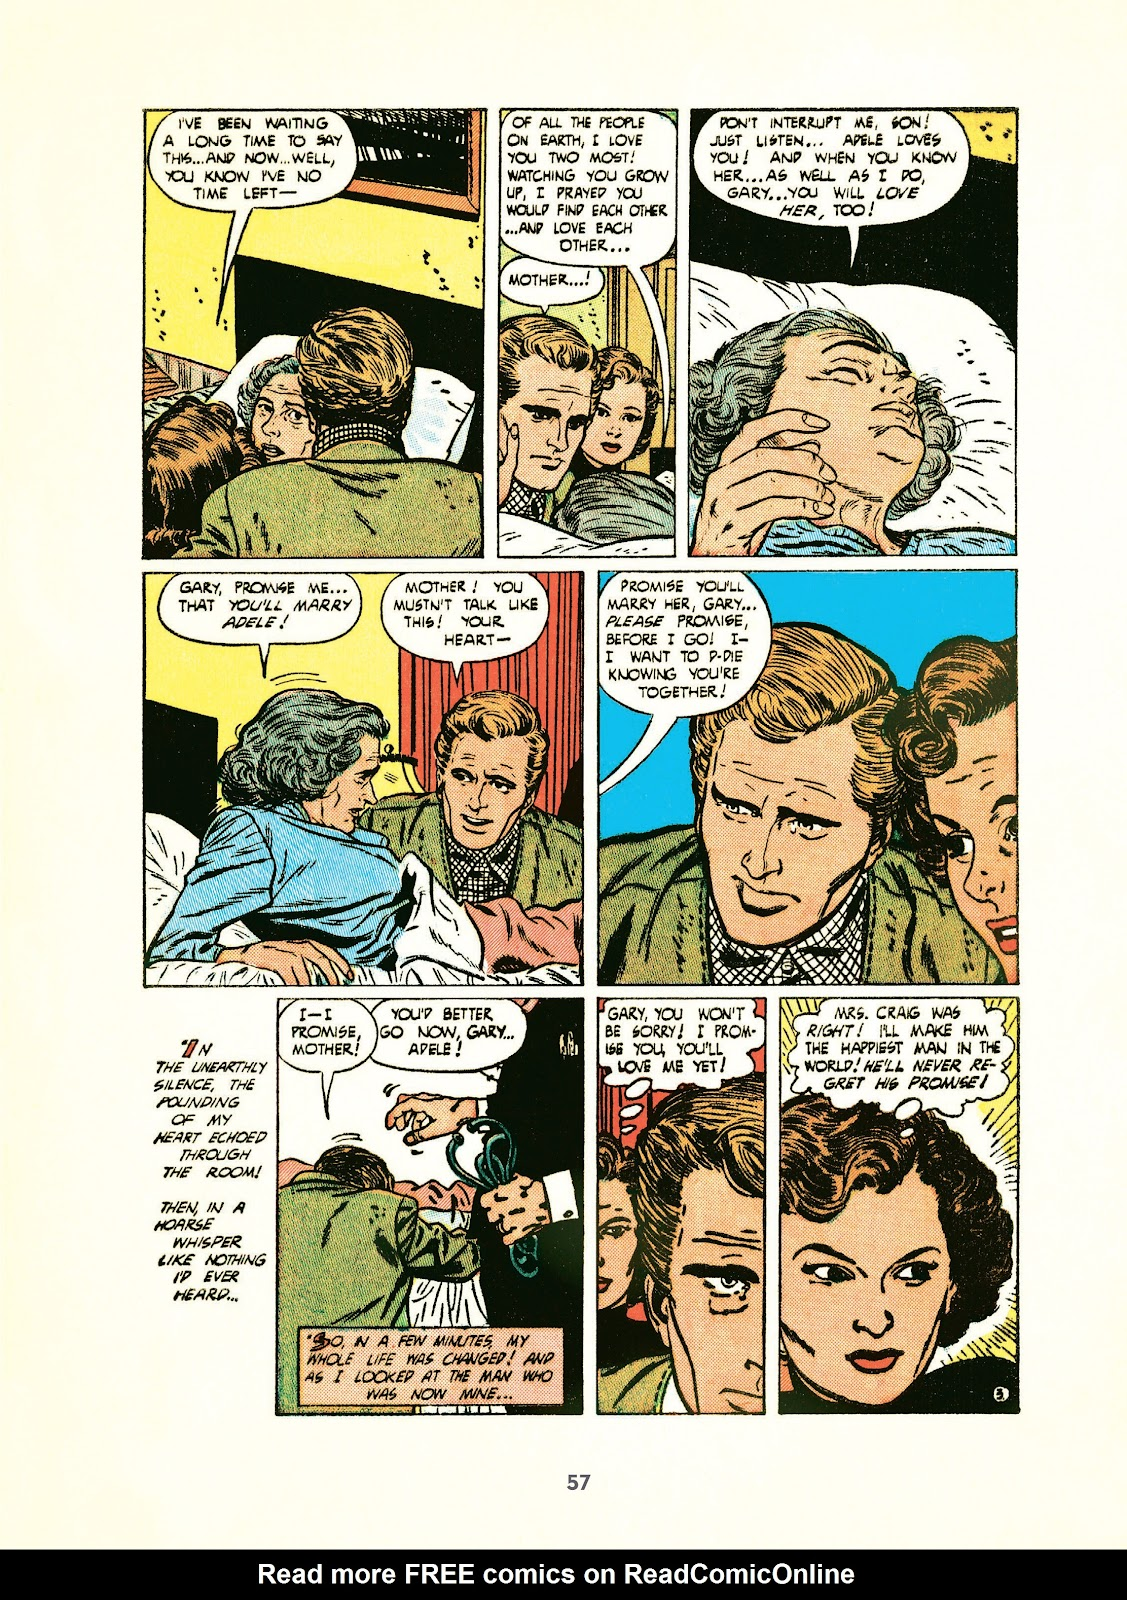 Read online Setting the Standard: Comics by Alex Toth 1952-1954 comic -  Issue # TPB (Part 1) - 56